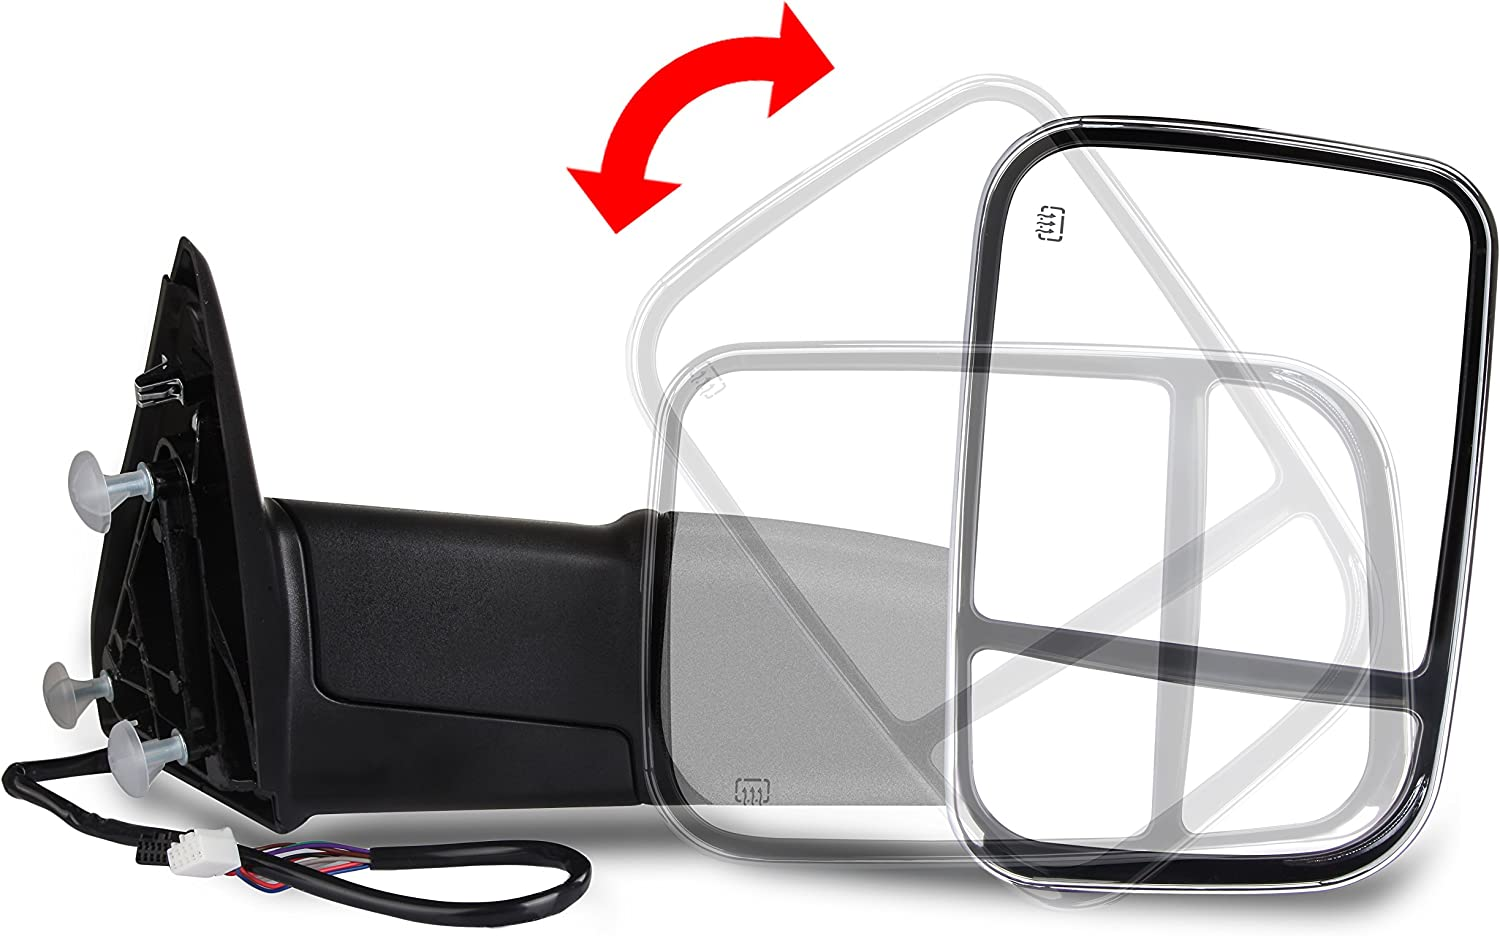 LSAILON Tow Mirrors Towing Mirrors Fit for 2011-2019 Dodge Ram 1500//2500//3500 with Left and Right Side Power Control Heated with Turn Signal Light Puddle Light Chrome